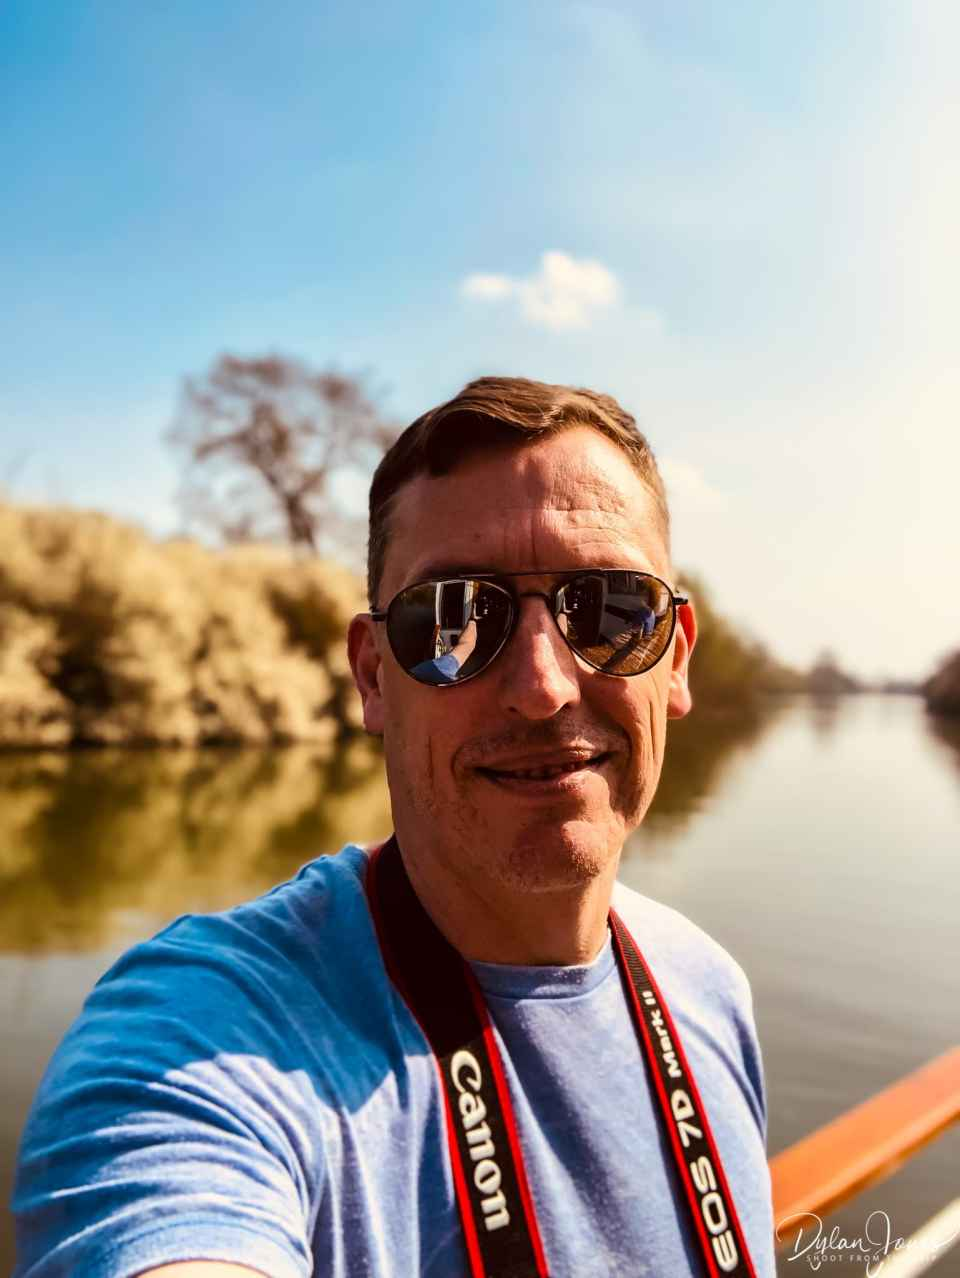 A sunny day selfie on the Thames Rivercruise